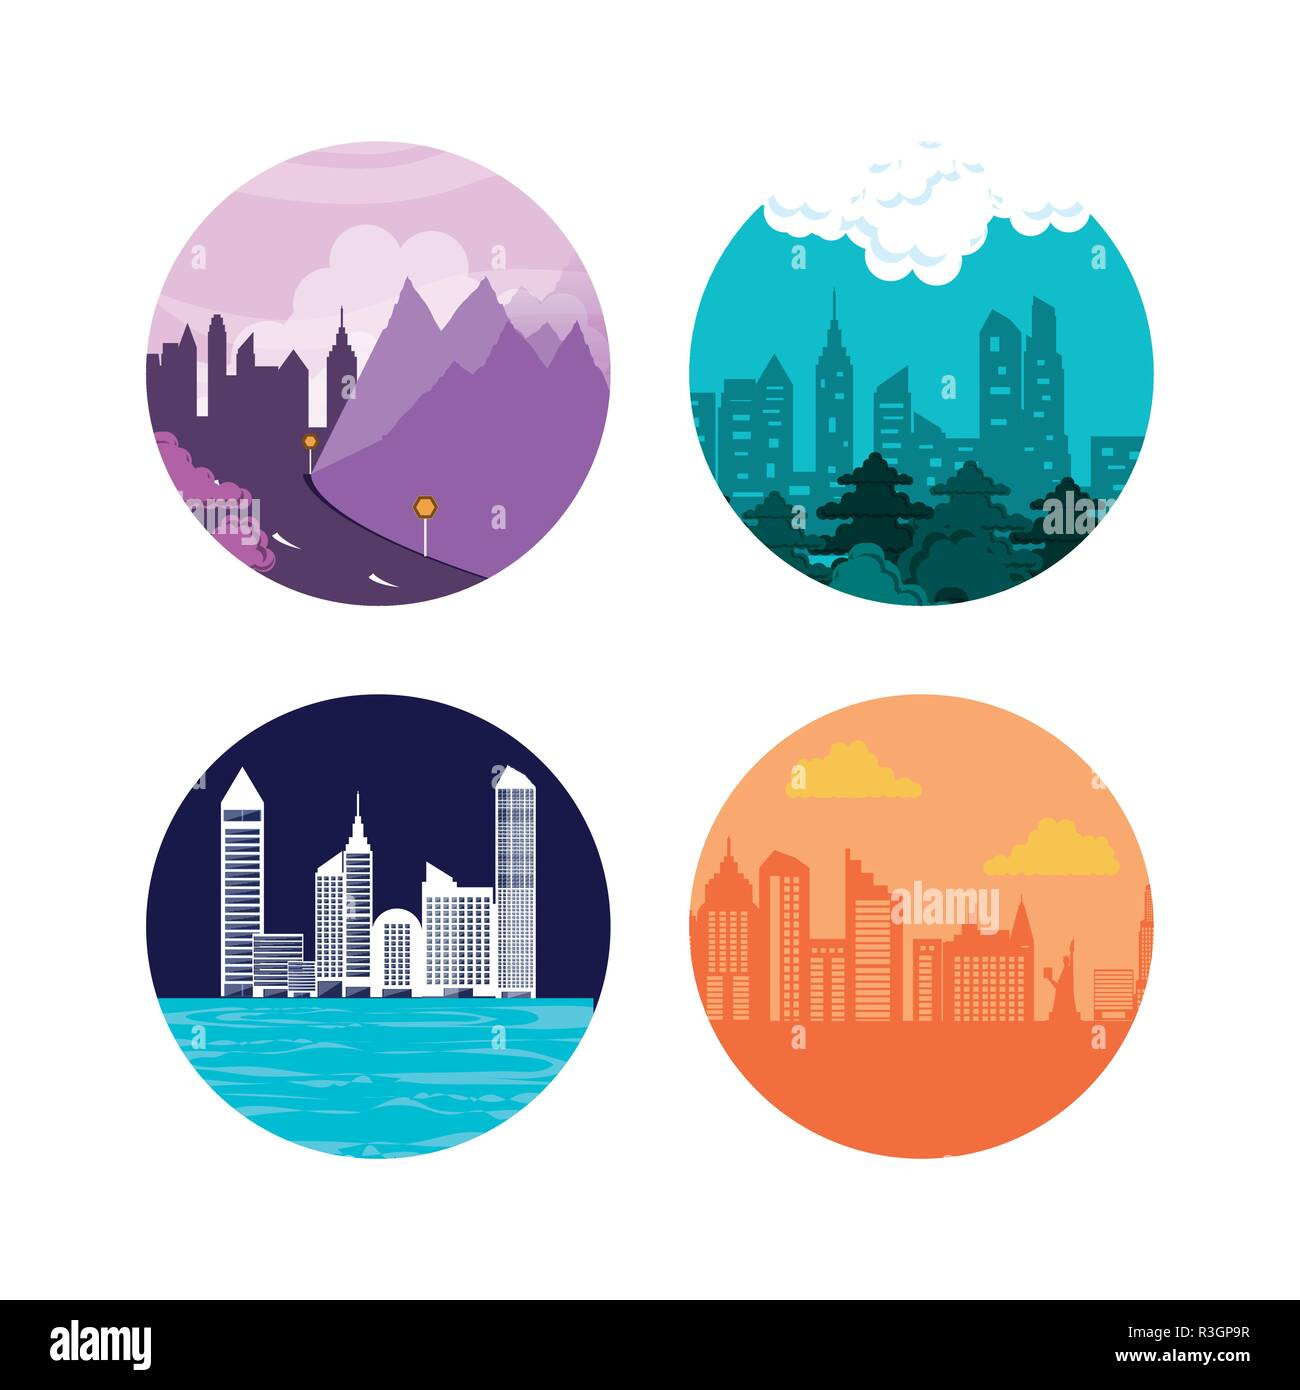 set cityscapes with buildings icon vector illustration design - Stock Image